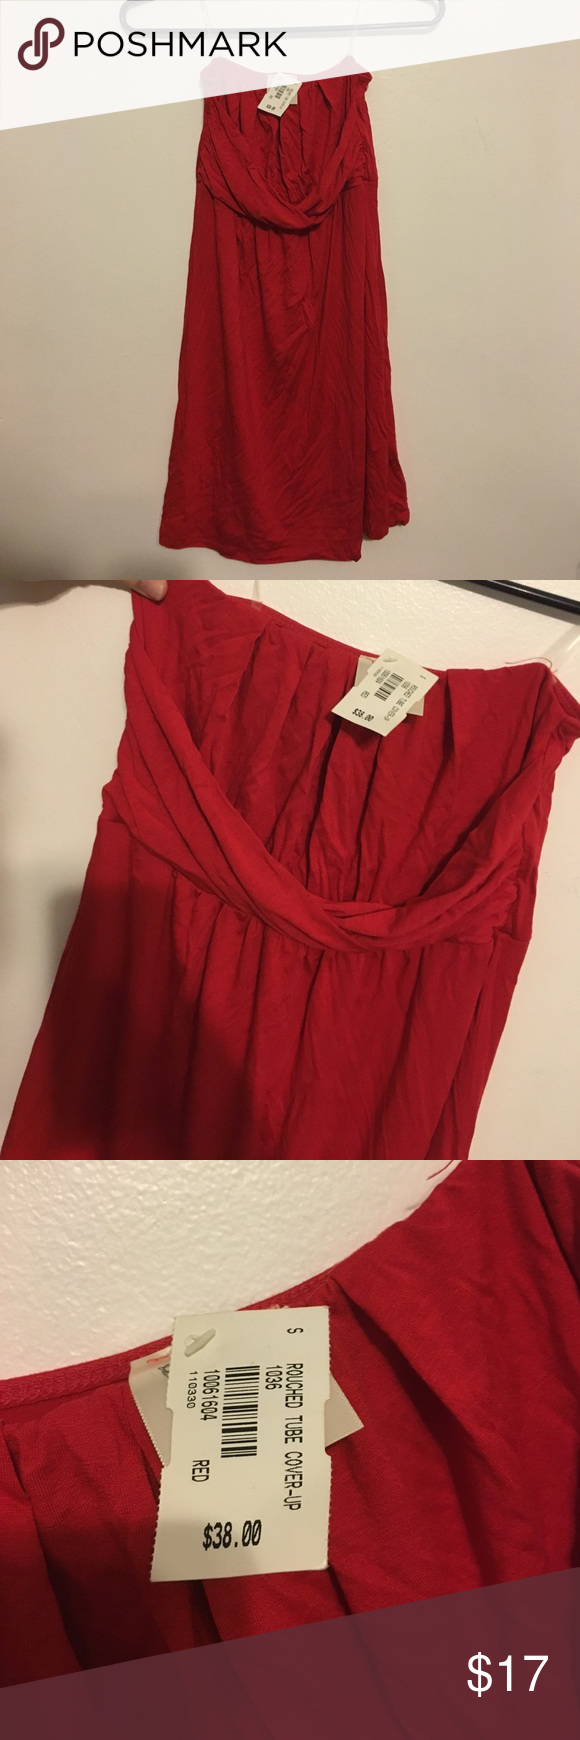 Red Coverup Red tube cover-up size small!! Could be worn as dress or cover up Dresses Strapless